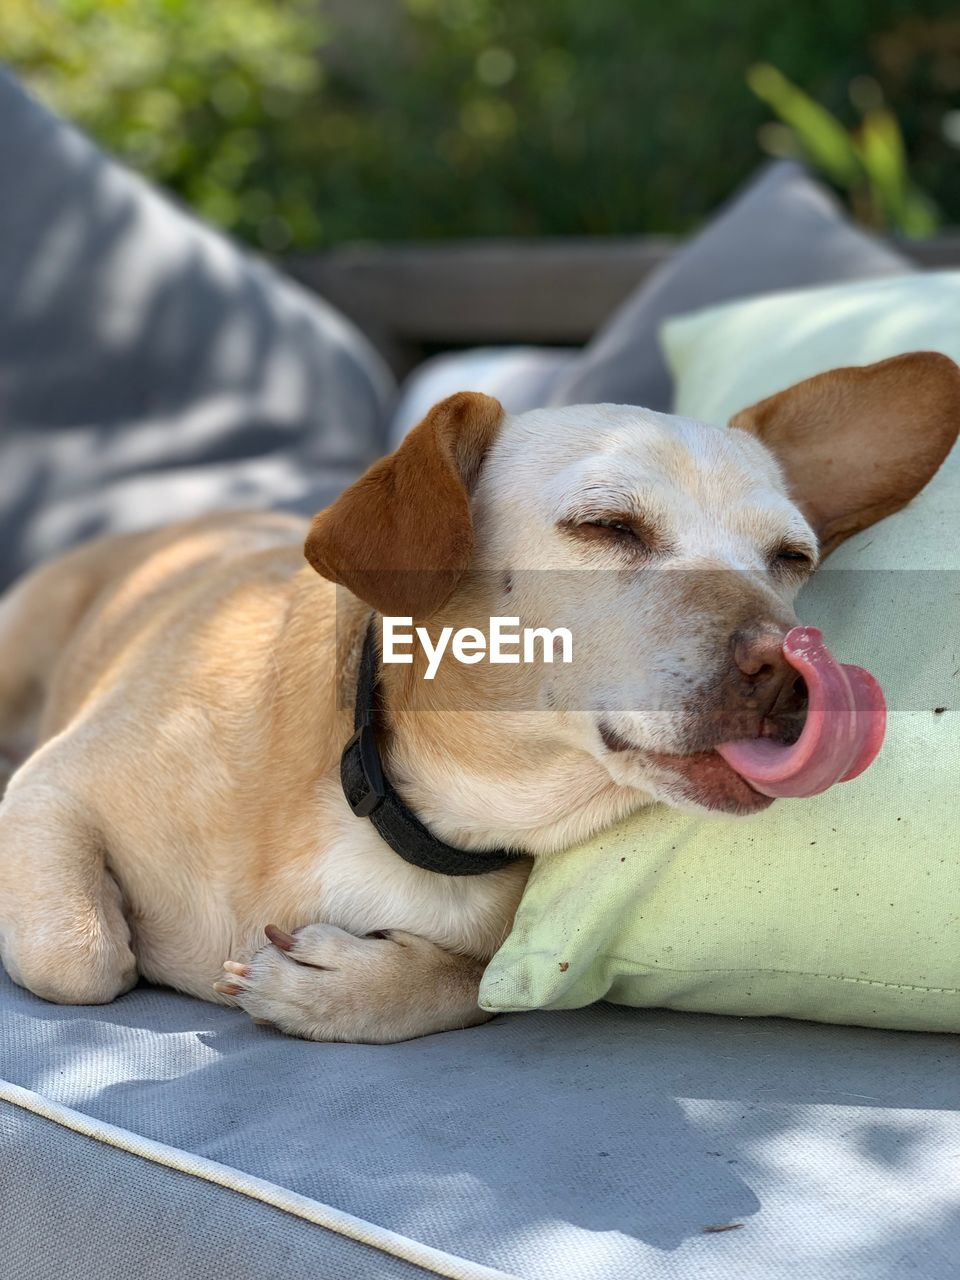 pets, domestic, domestic animals, one animal, dog, canine, animal themes, mammal, animal, vertebrate, relaxation, day, no people, facial expression, close-up, animal body part, sticking out tongue, lying down, focus on foreground, mouth open, outdoors, animal tongue, panting, animal head